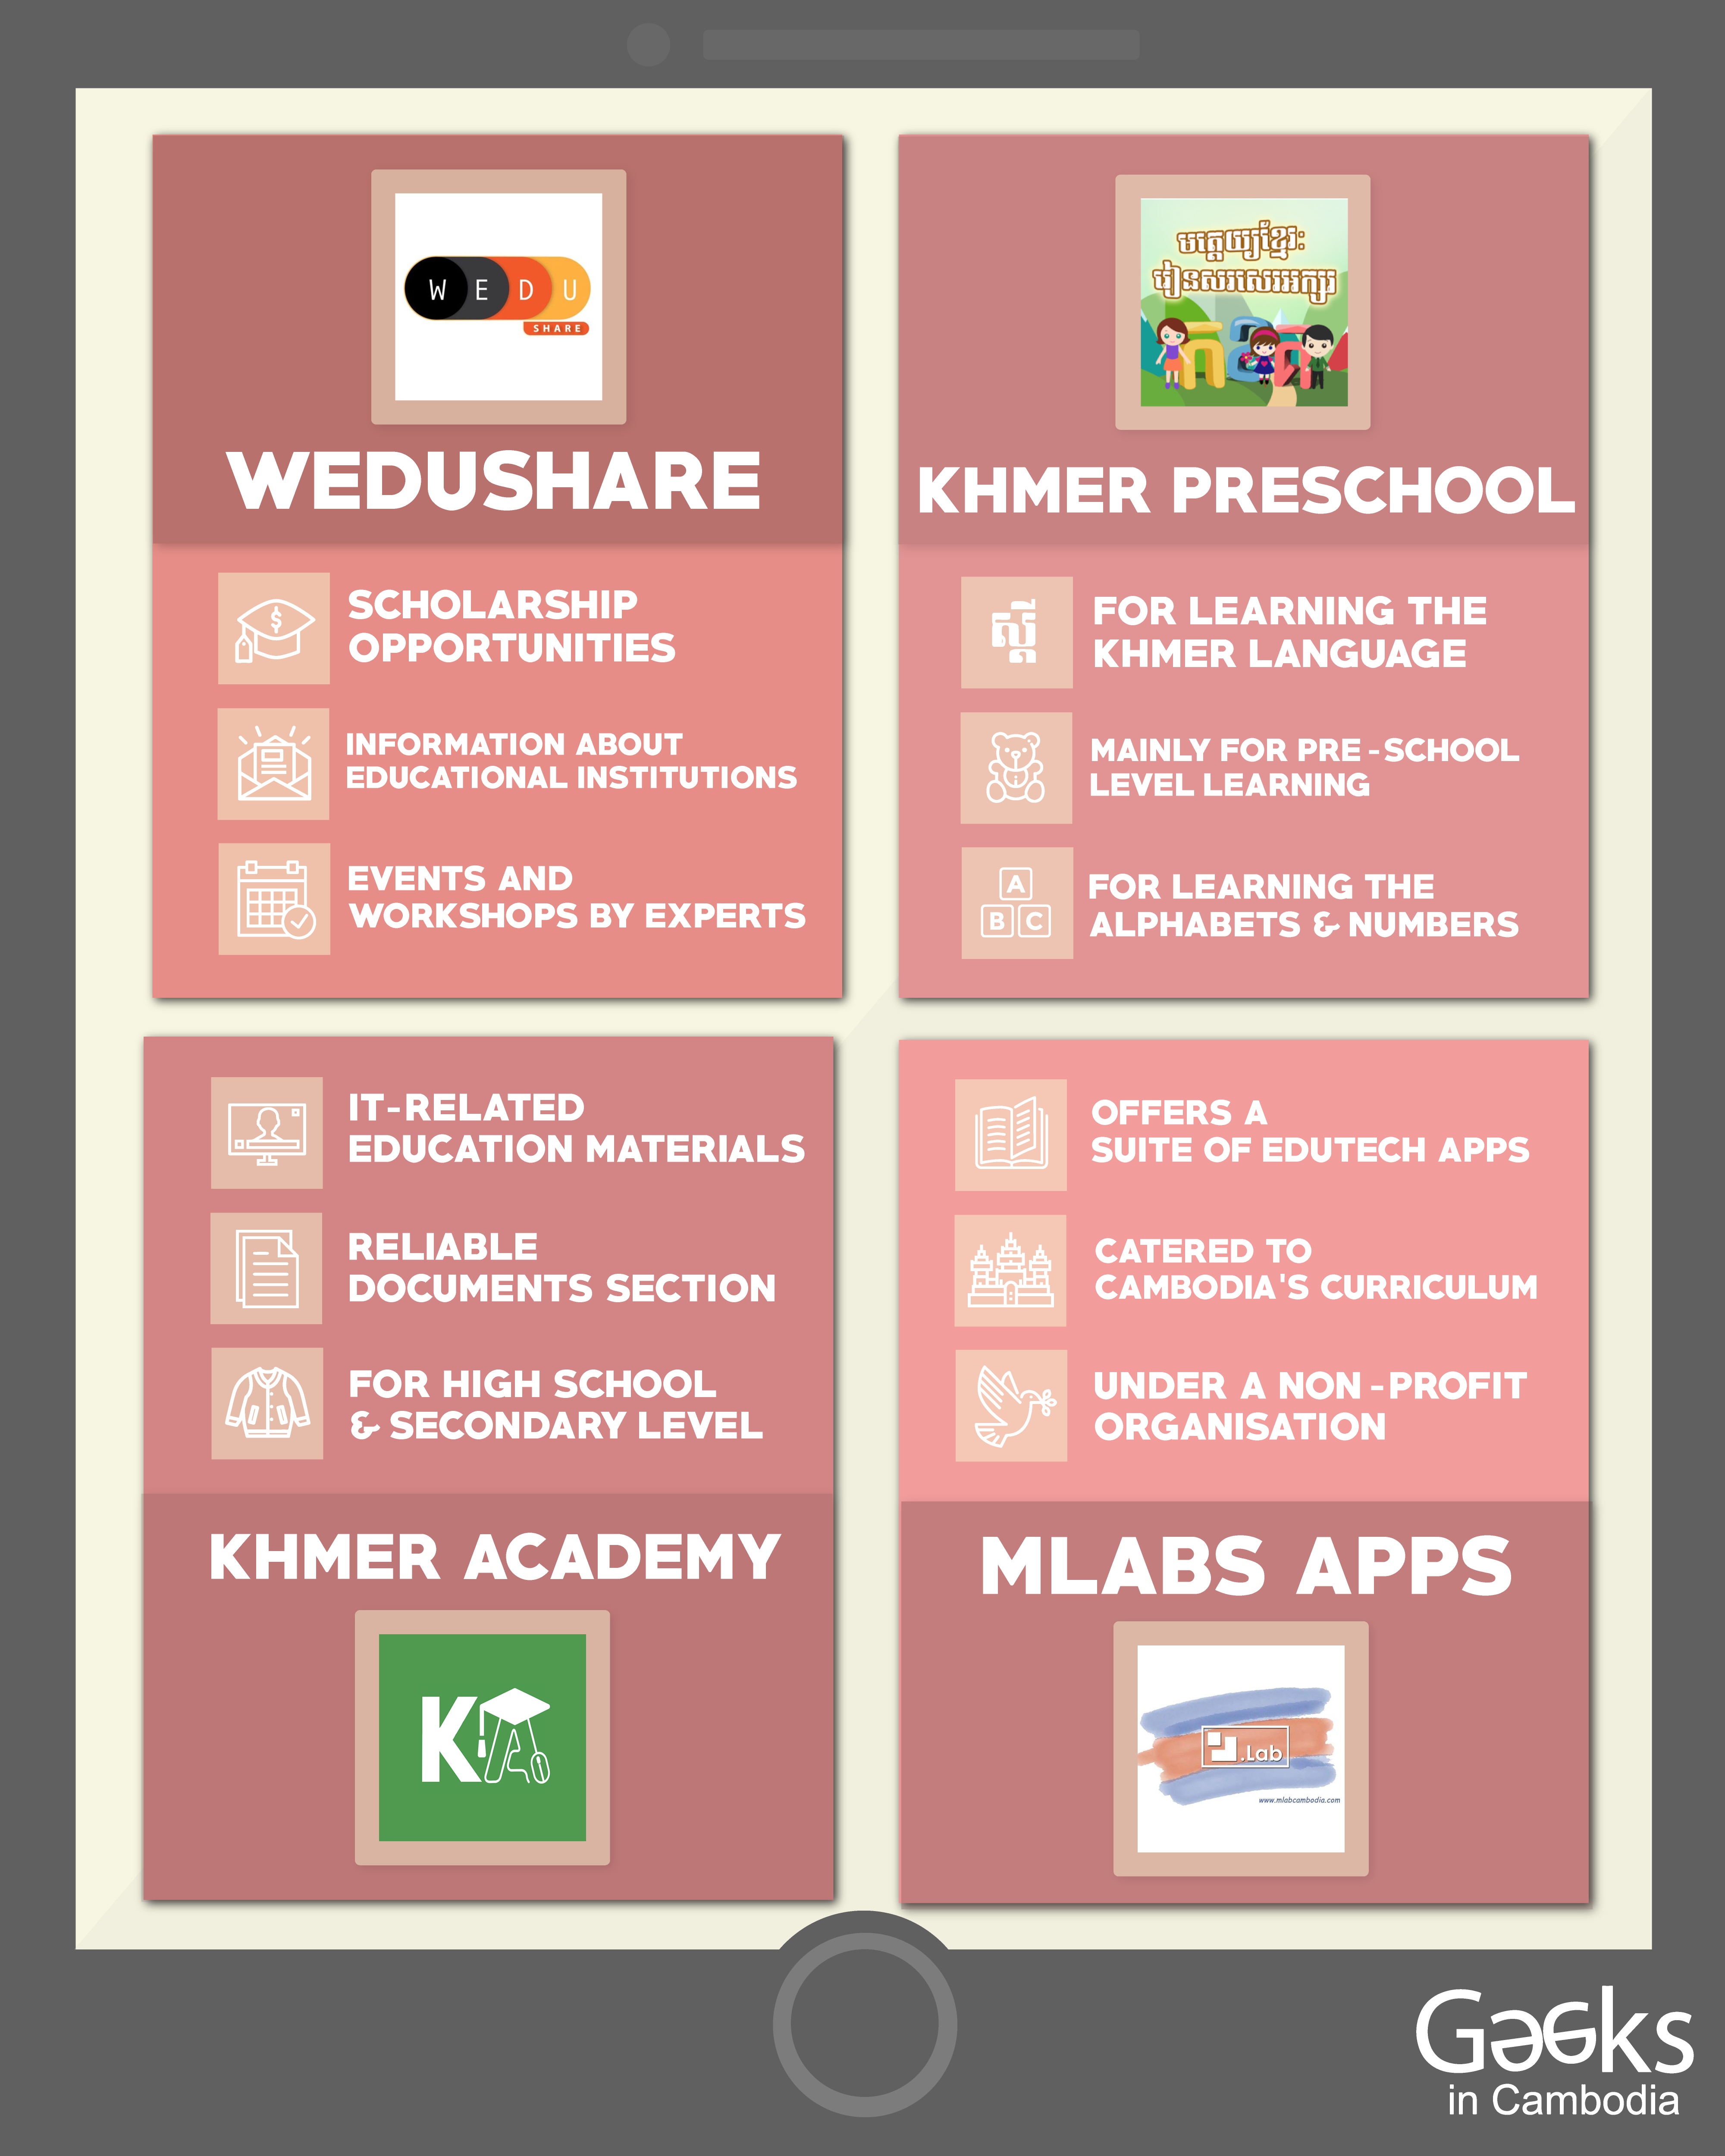 Quick Summary of EdTech Online Platforms and Mobile Applications Information Source: WeduShare, Khmer Preschool App, Khmer Academy and MLabs Apps